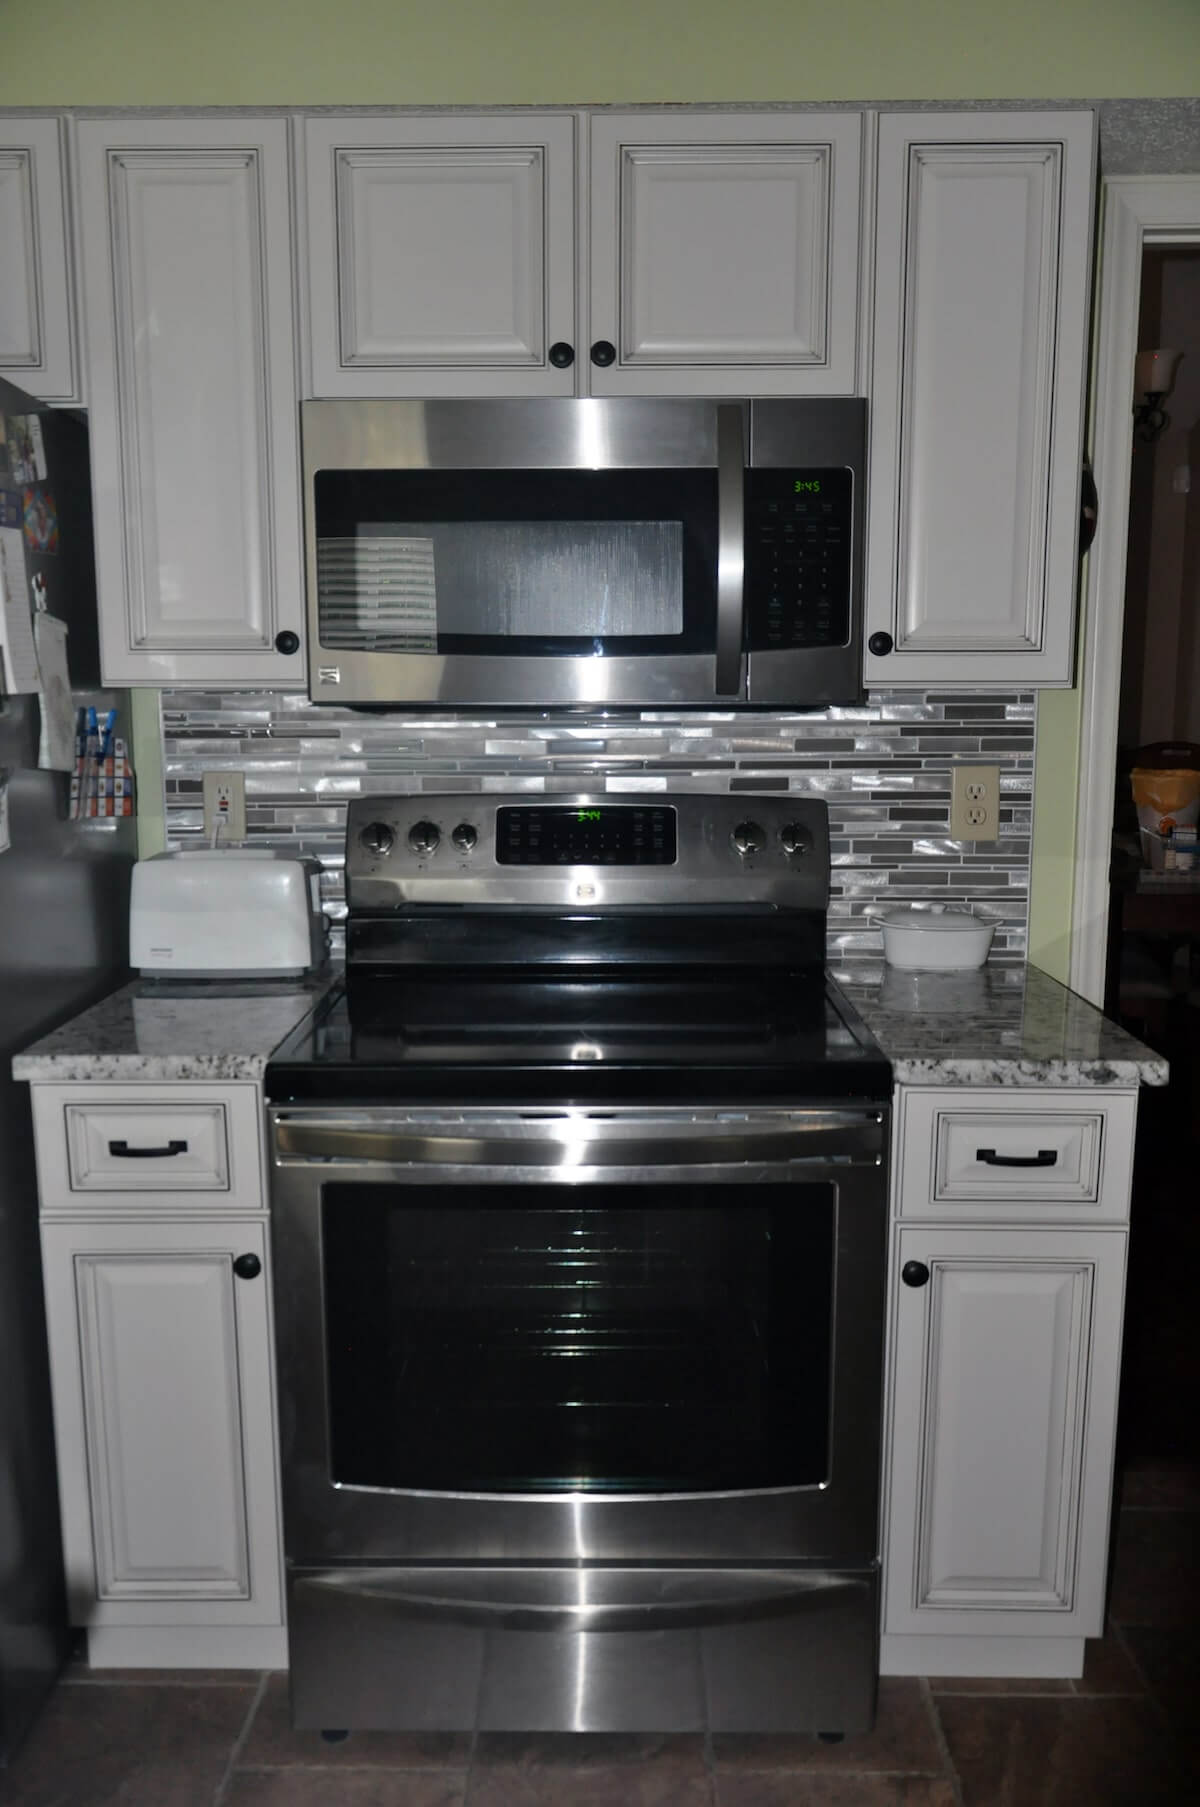 Stainless steel appliances and white cabinets